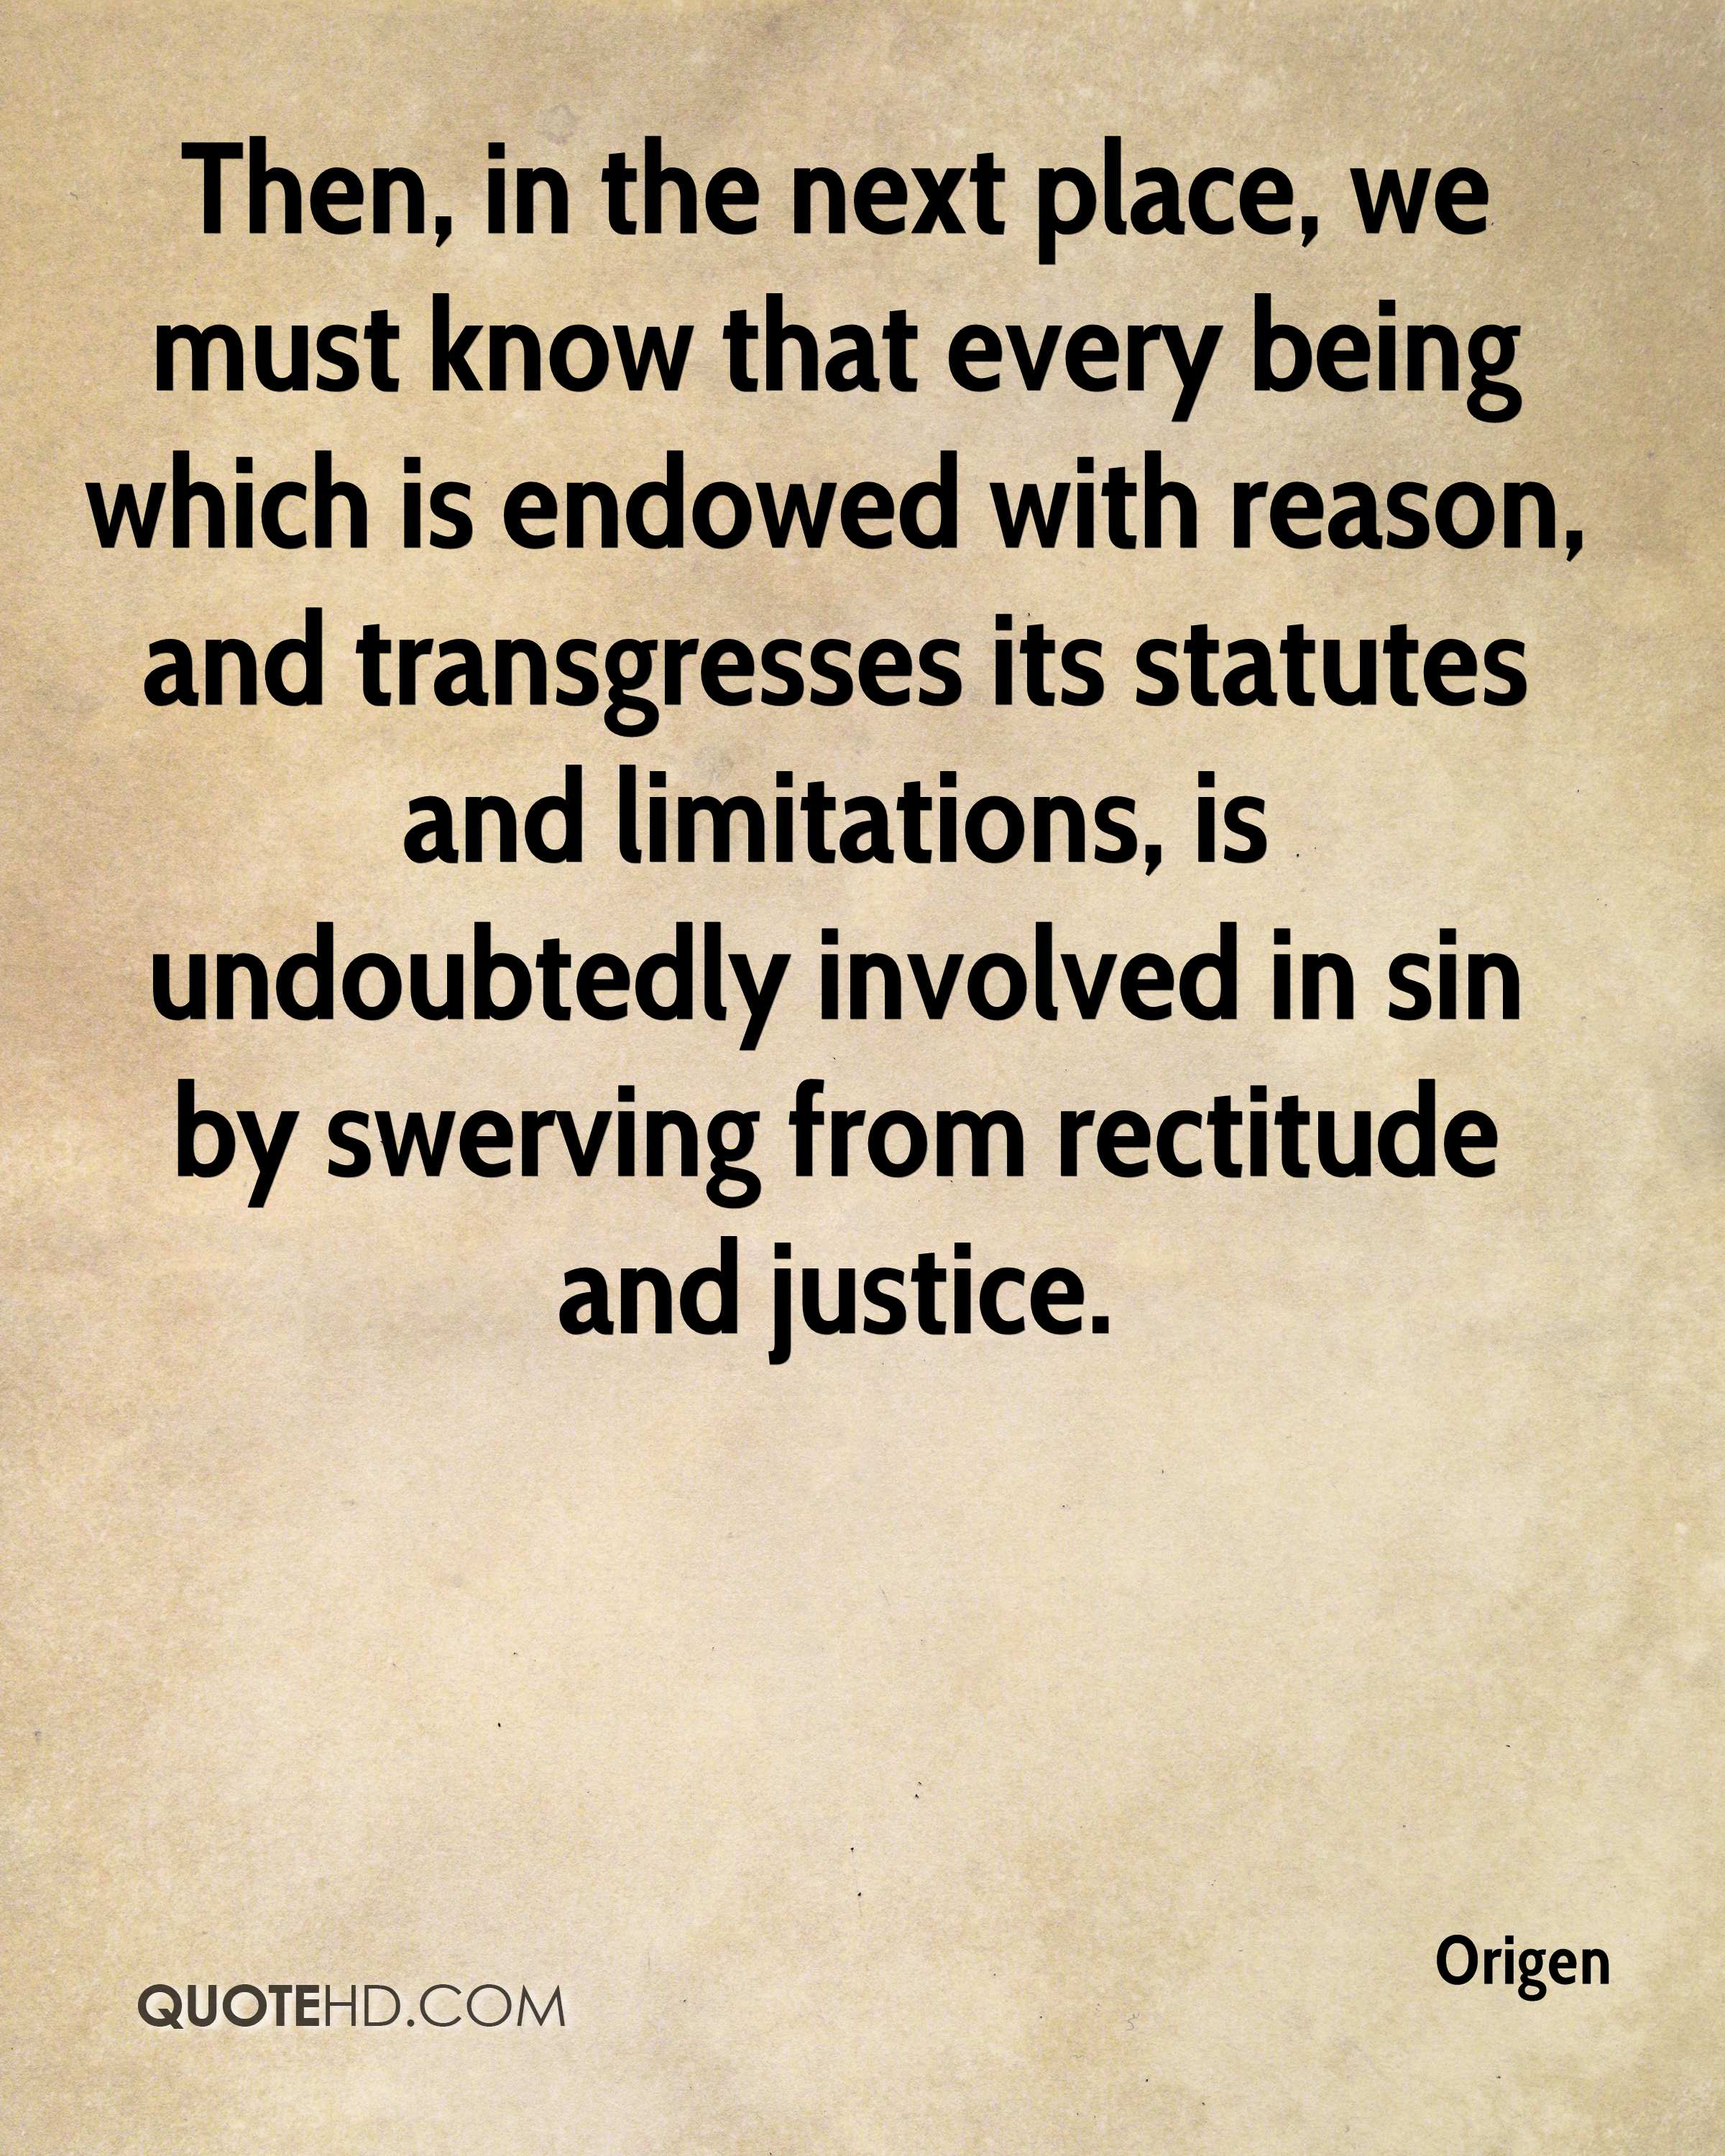 Then, in the next place, we must know that every being which is endowed with reason, and transgresses its statutes and limitations, is undoubtedly involved in sin by swerving from rectitude and justice.